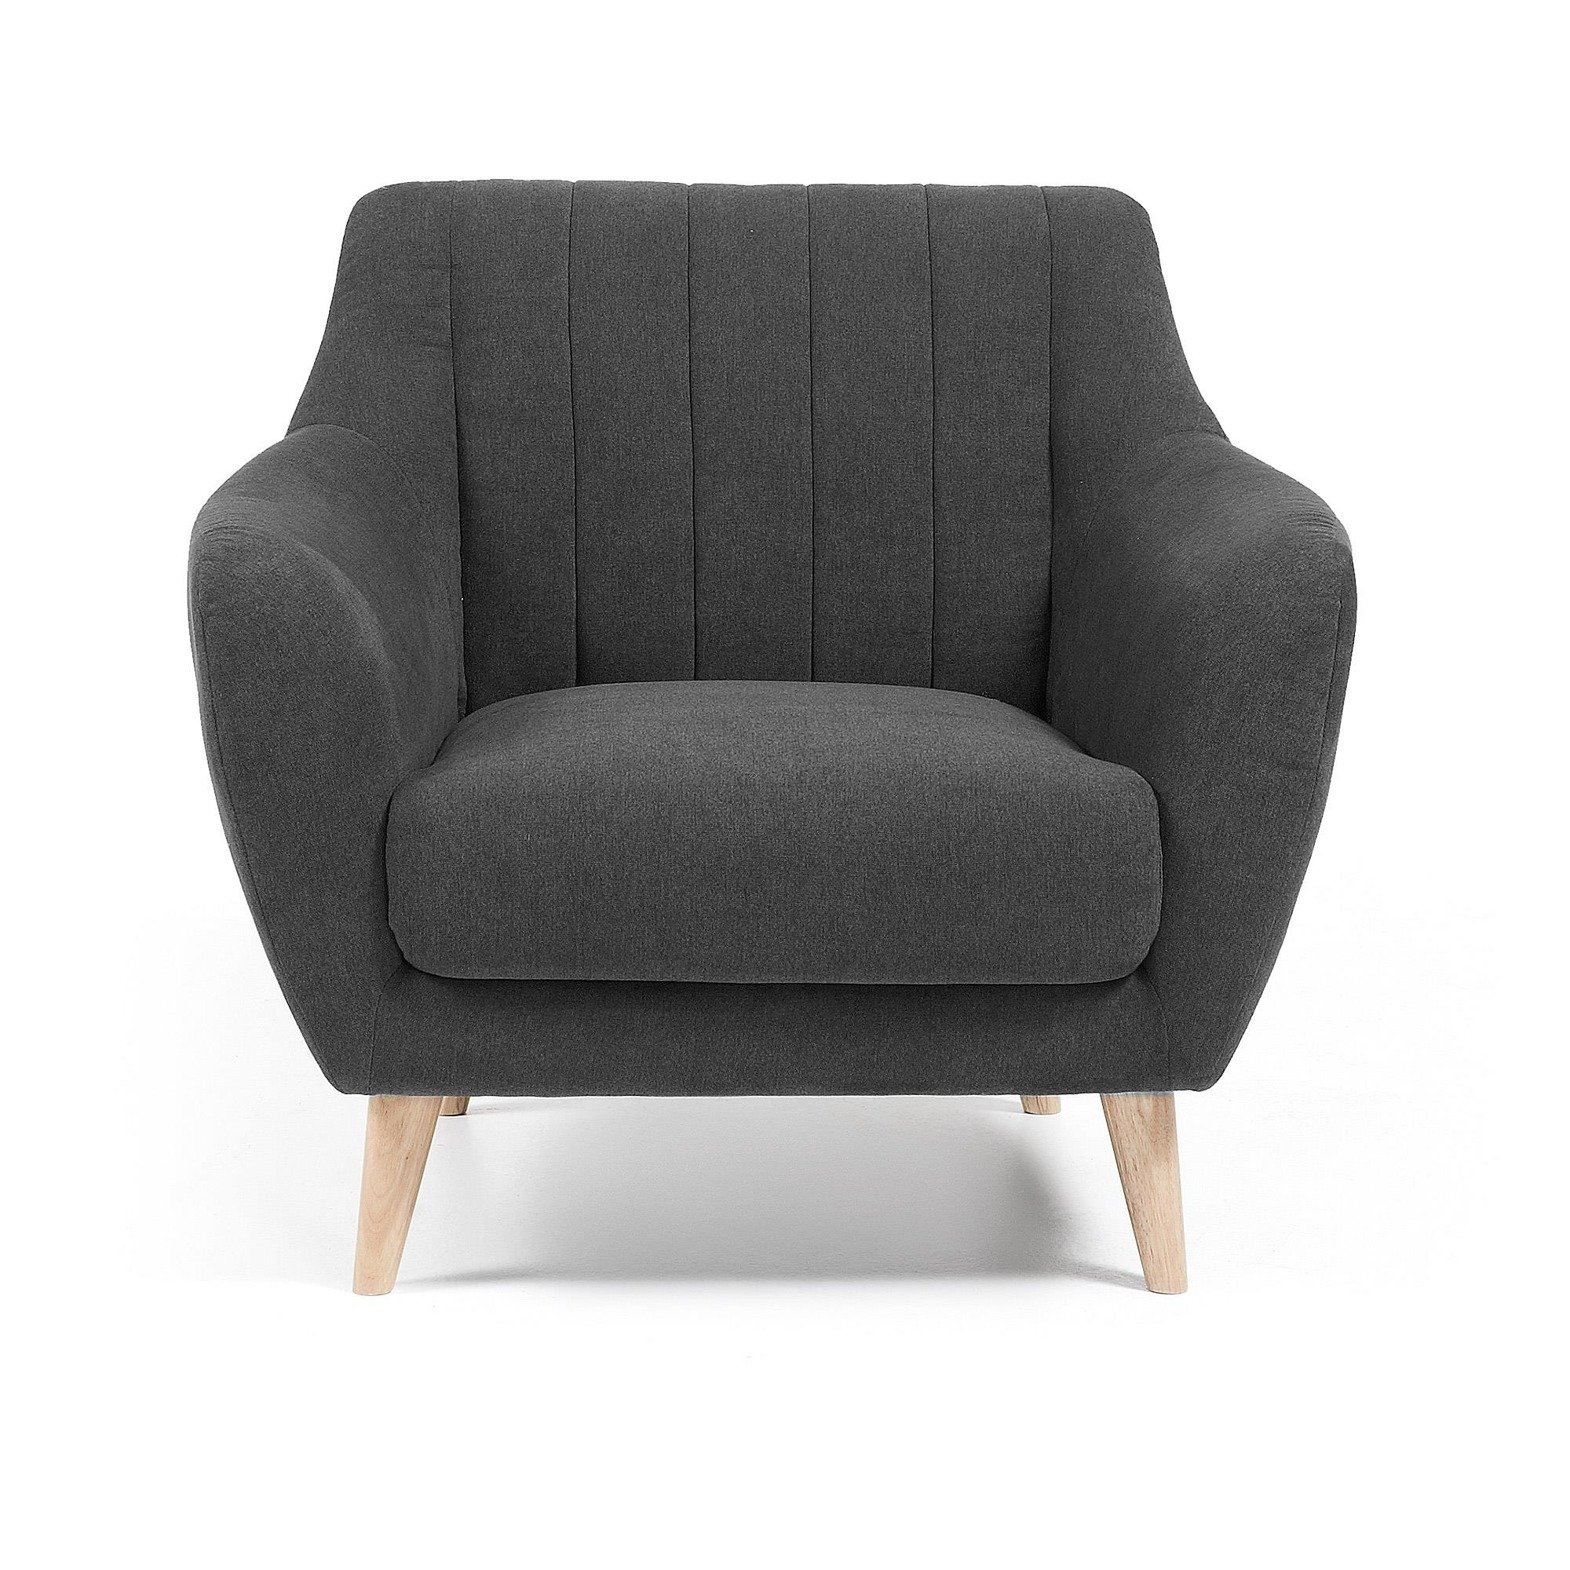 FRE Armchair natural wood, fabric dark gray